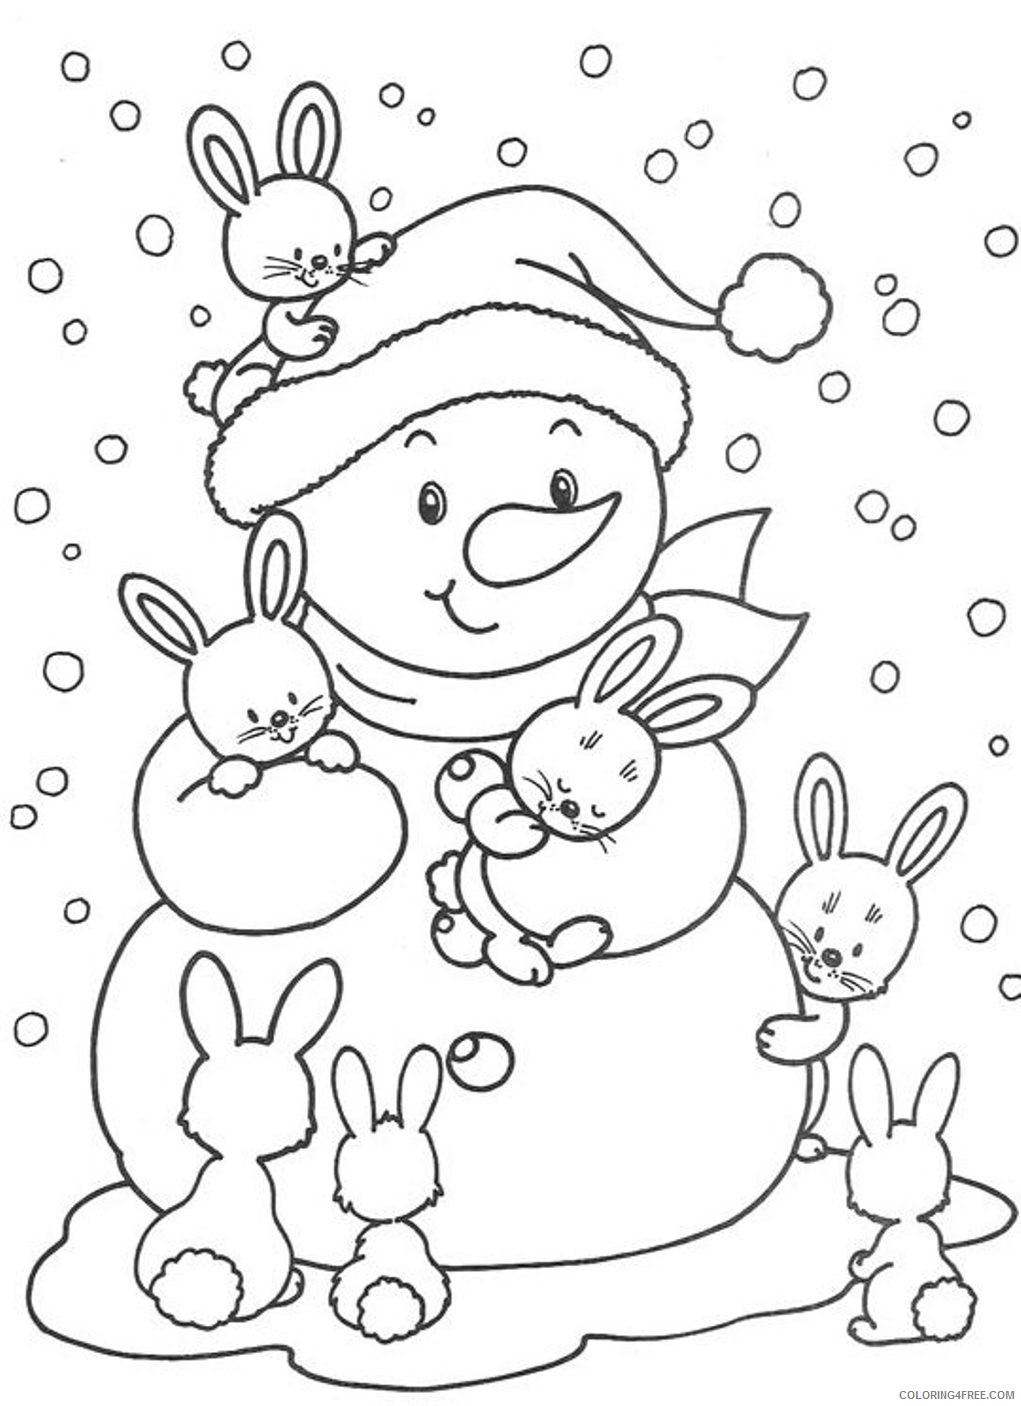 - Cute Winter Coloring Pages For Kids Coloring4free - Coloring4Free.com